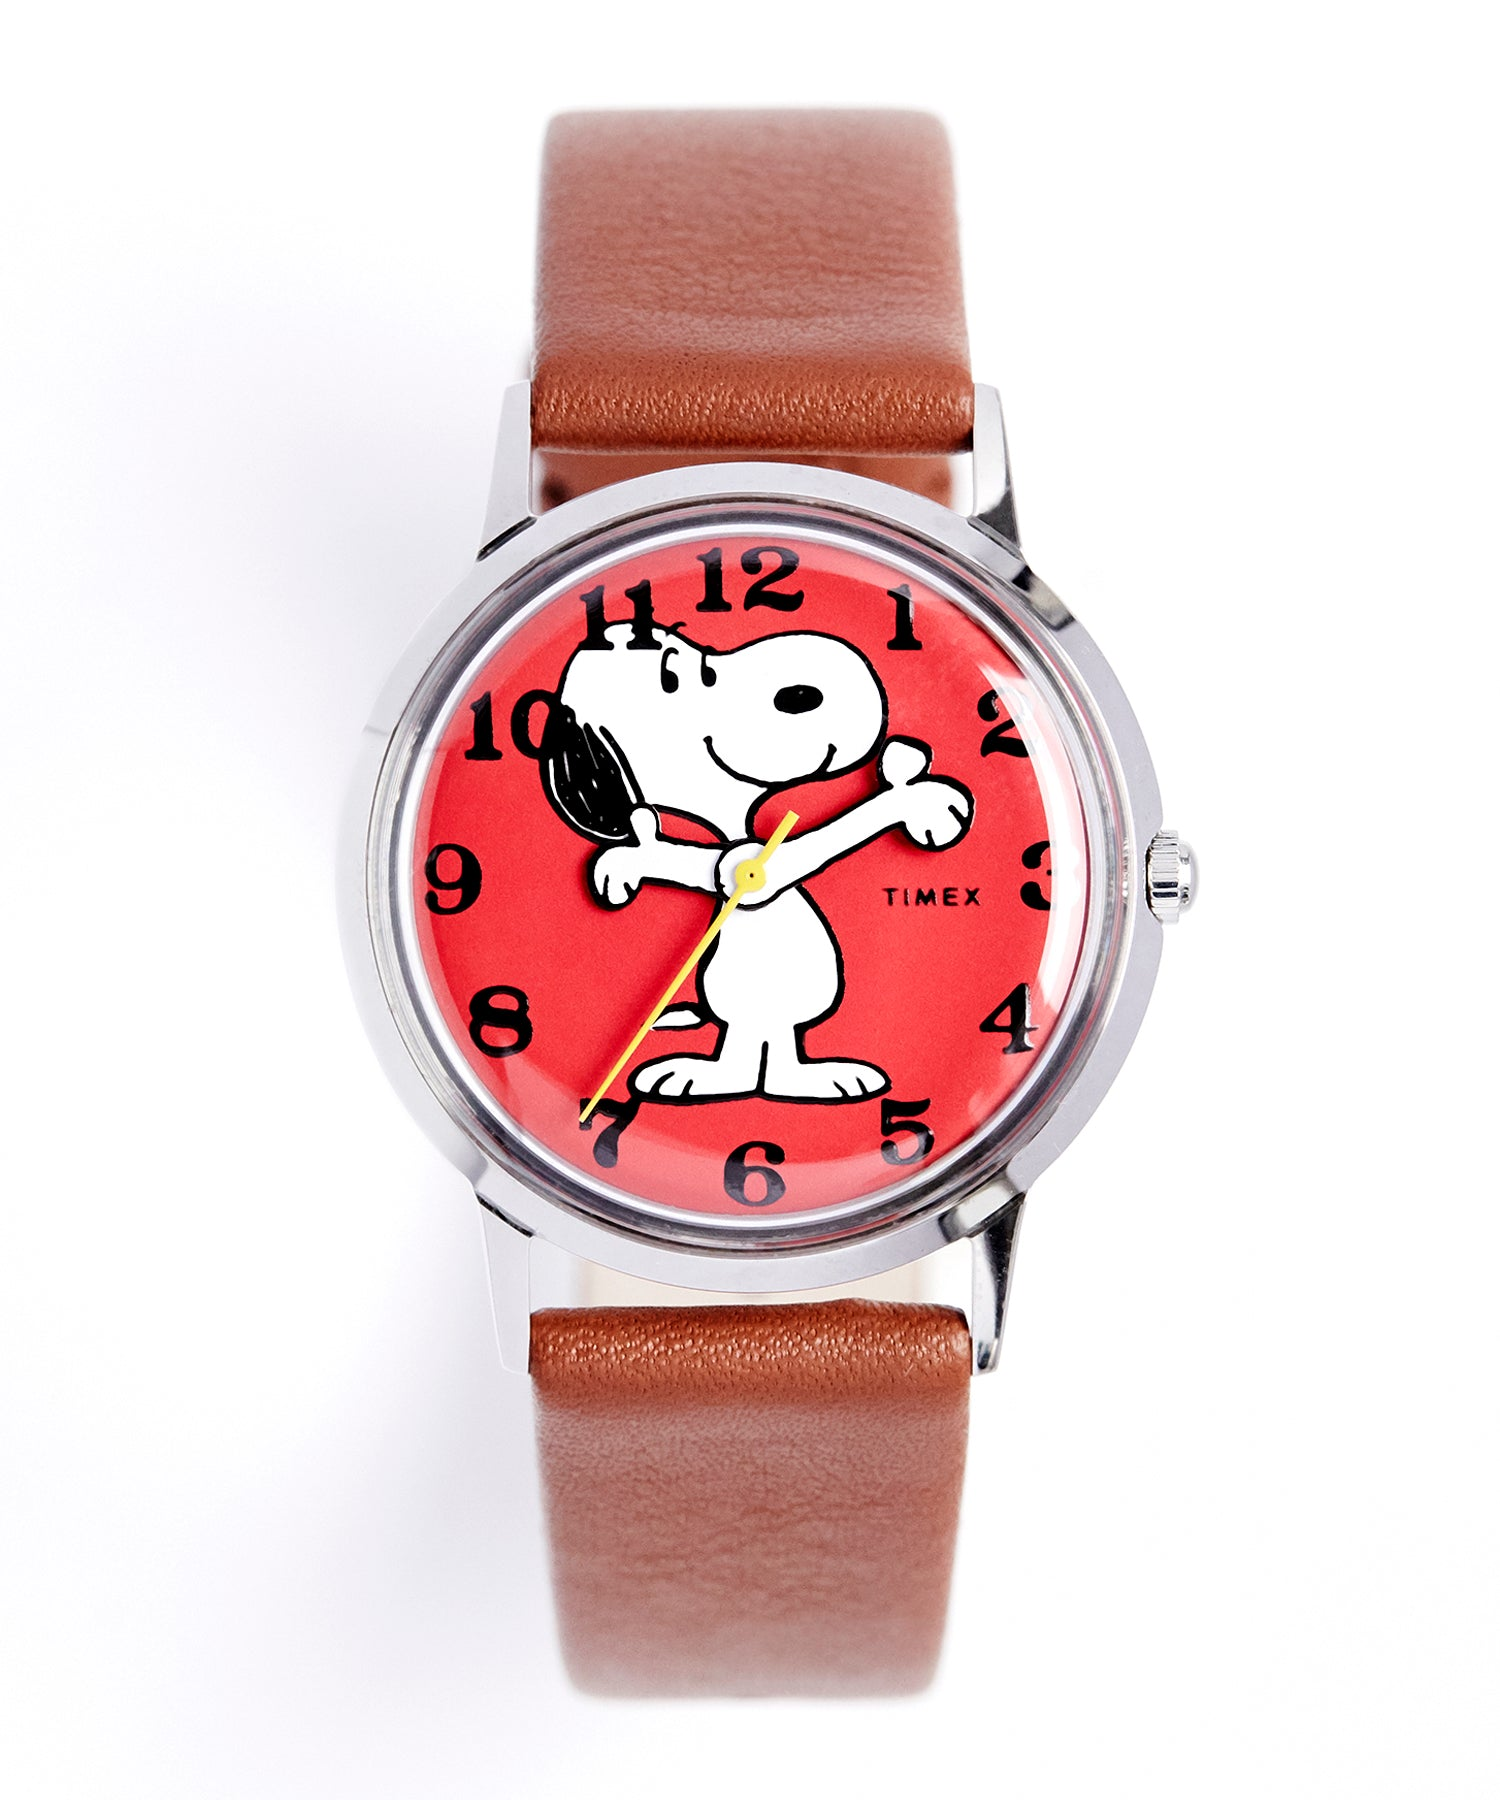 Timex X Peanuts Snoopy Watch 34mm